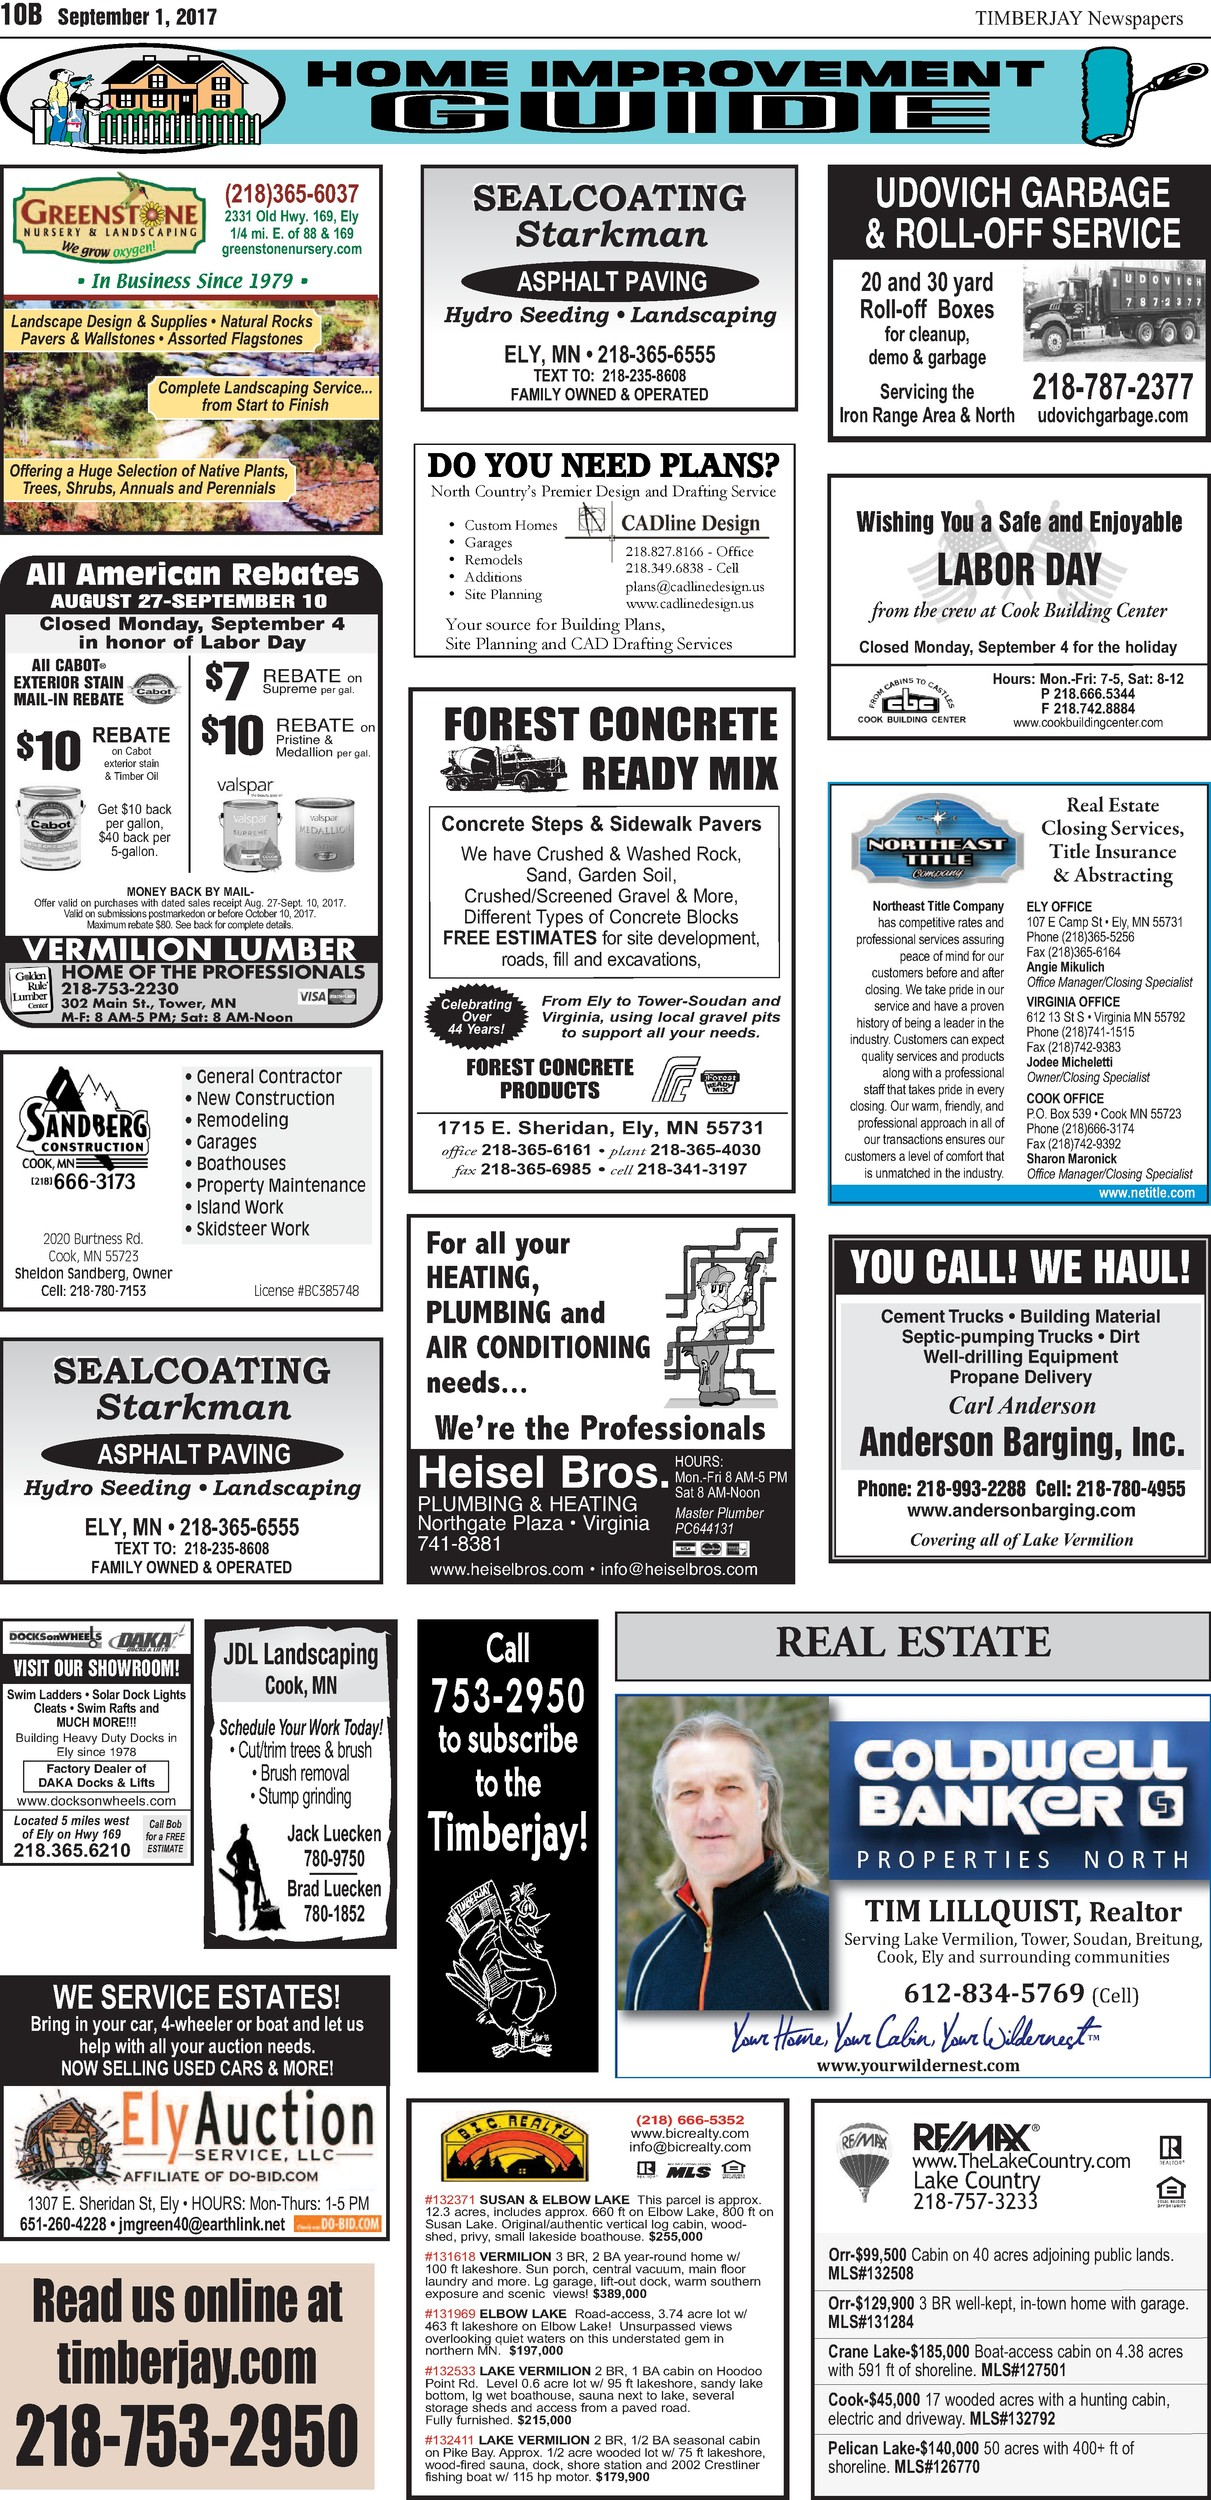 Click here for the legal notices and classifieds from page 10B